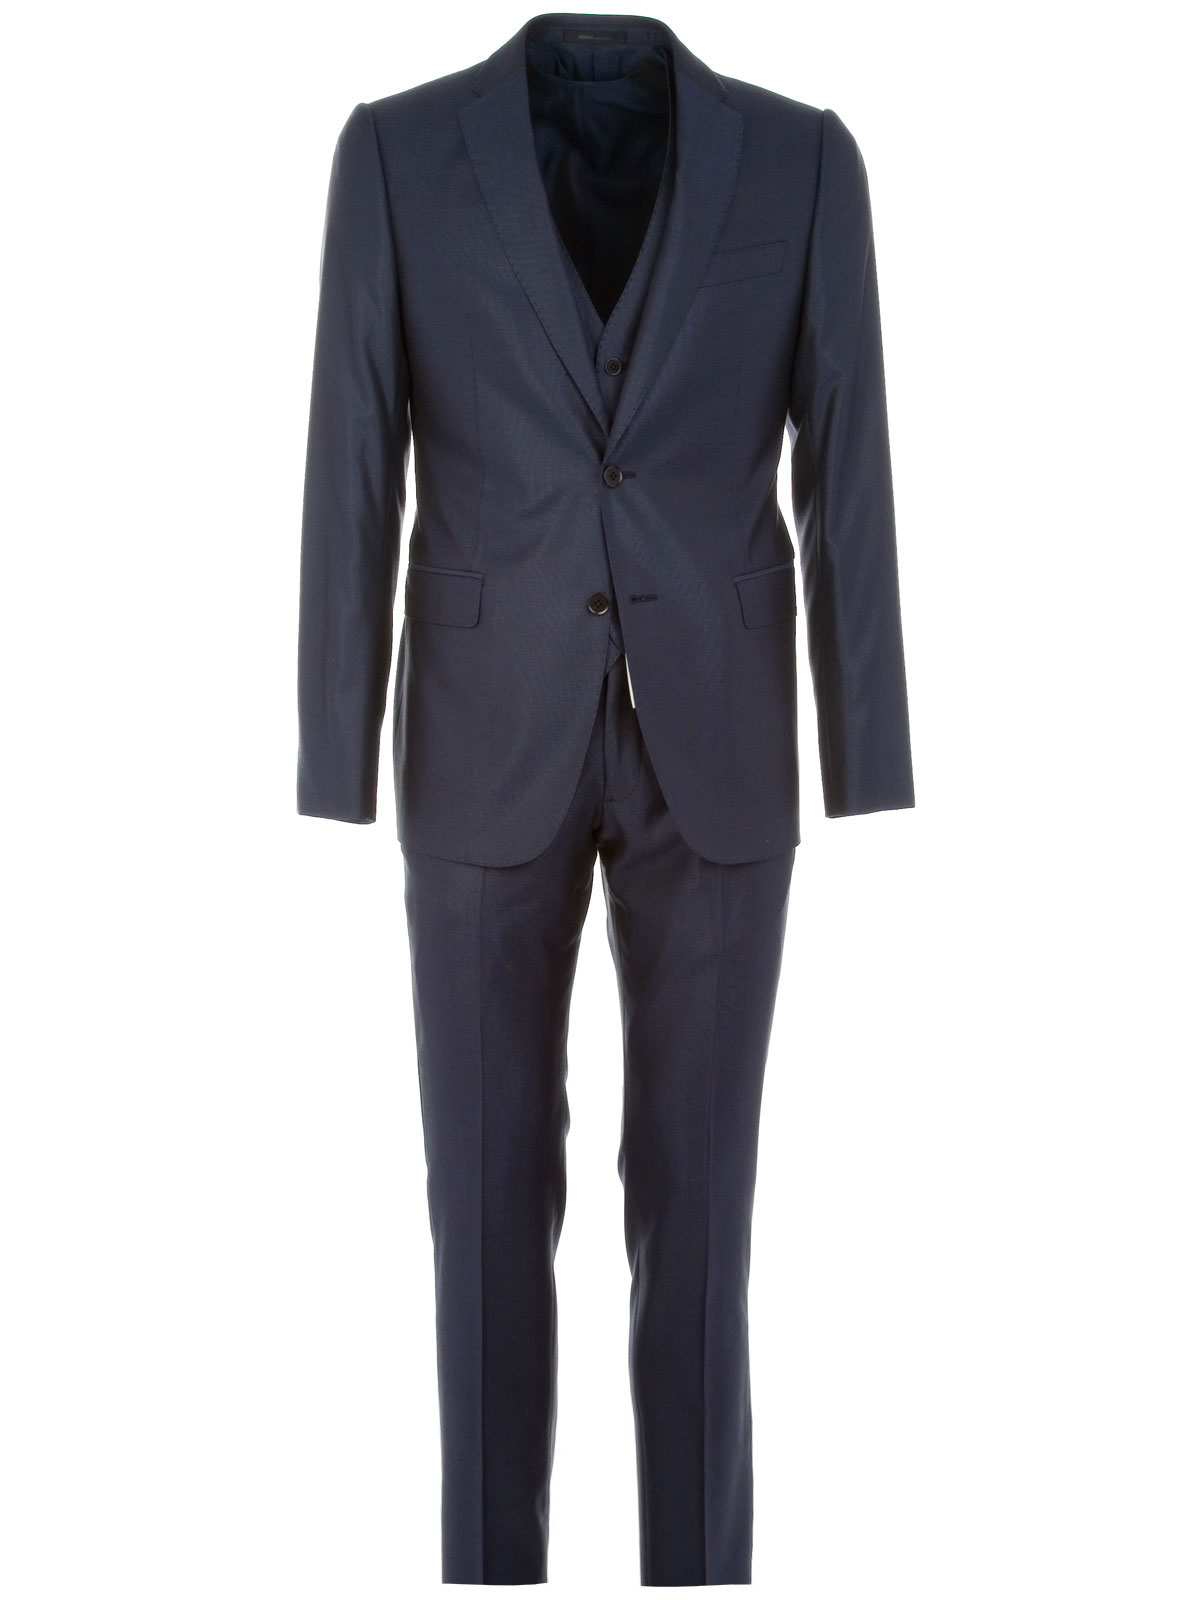 Picture of ARMANI | Suit in Virgin Wool + Vest